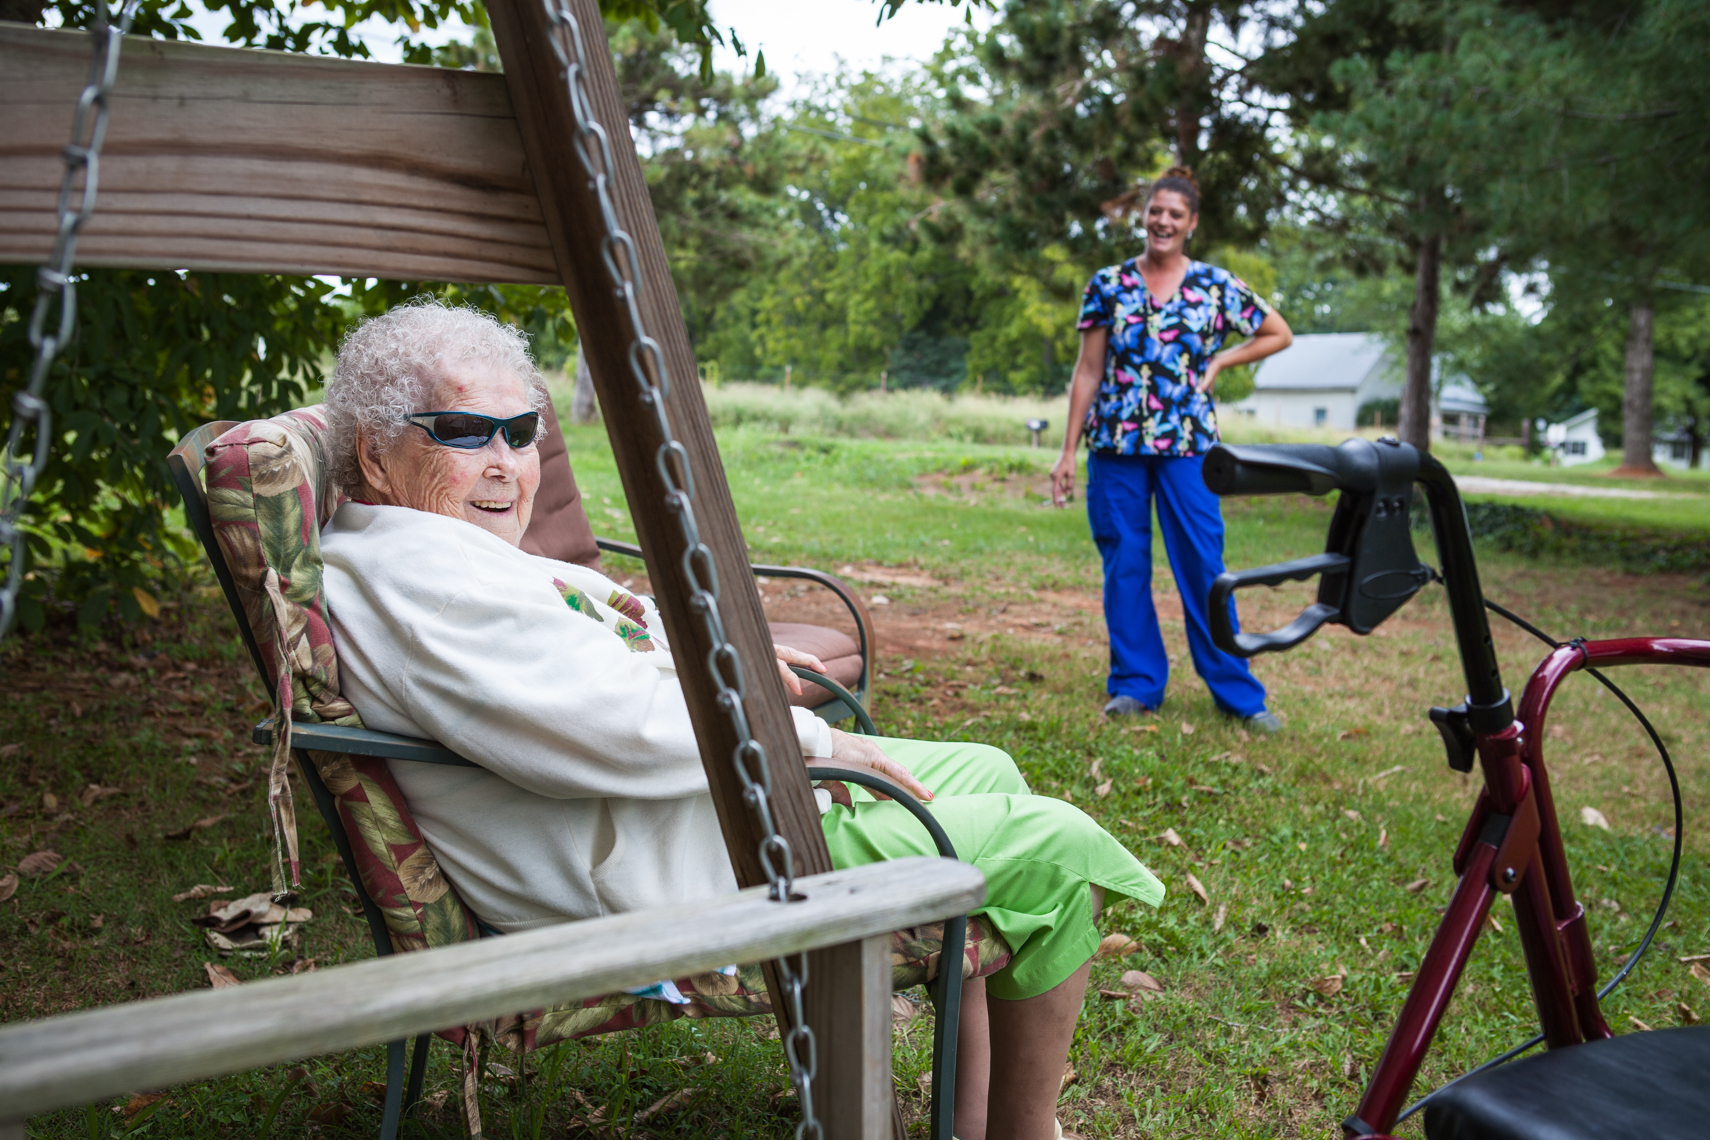 Elderly woman on a swing, wearing funny sunglasses, with her caregiver nearby. Smiling, laughing, happy, healthcare, aid, worker, work, at work, costs, medical, physical therapy, disability, rehabilitation, aging